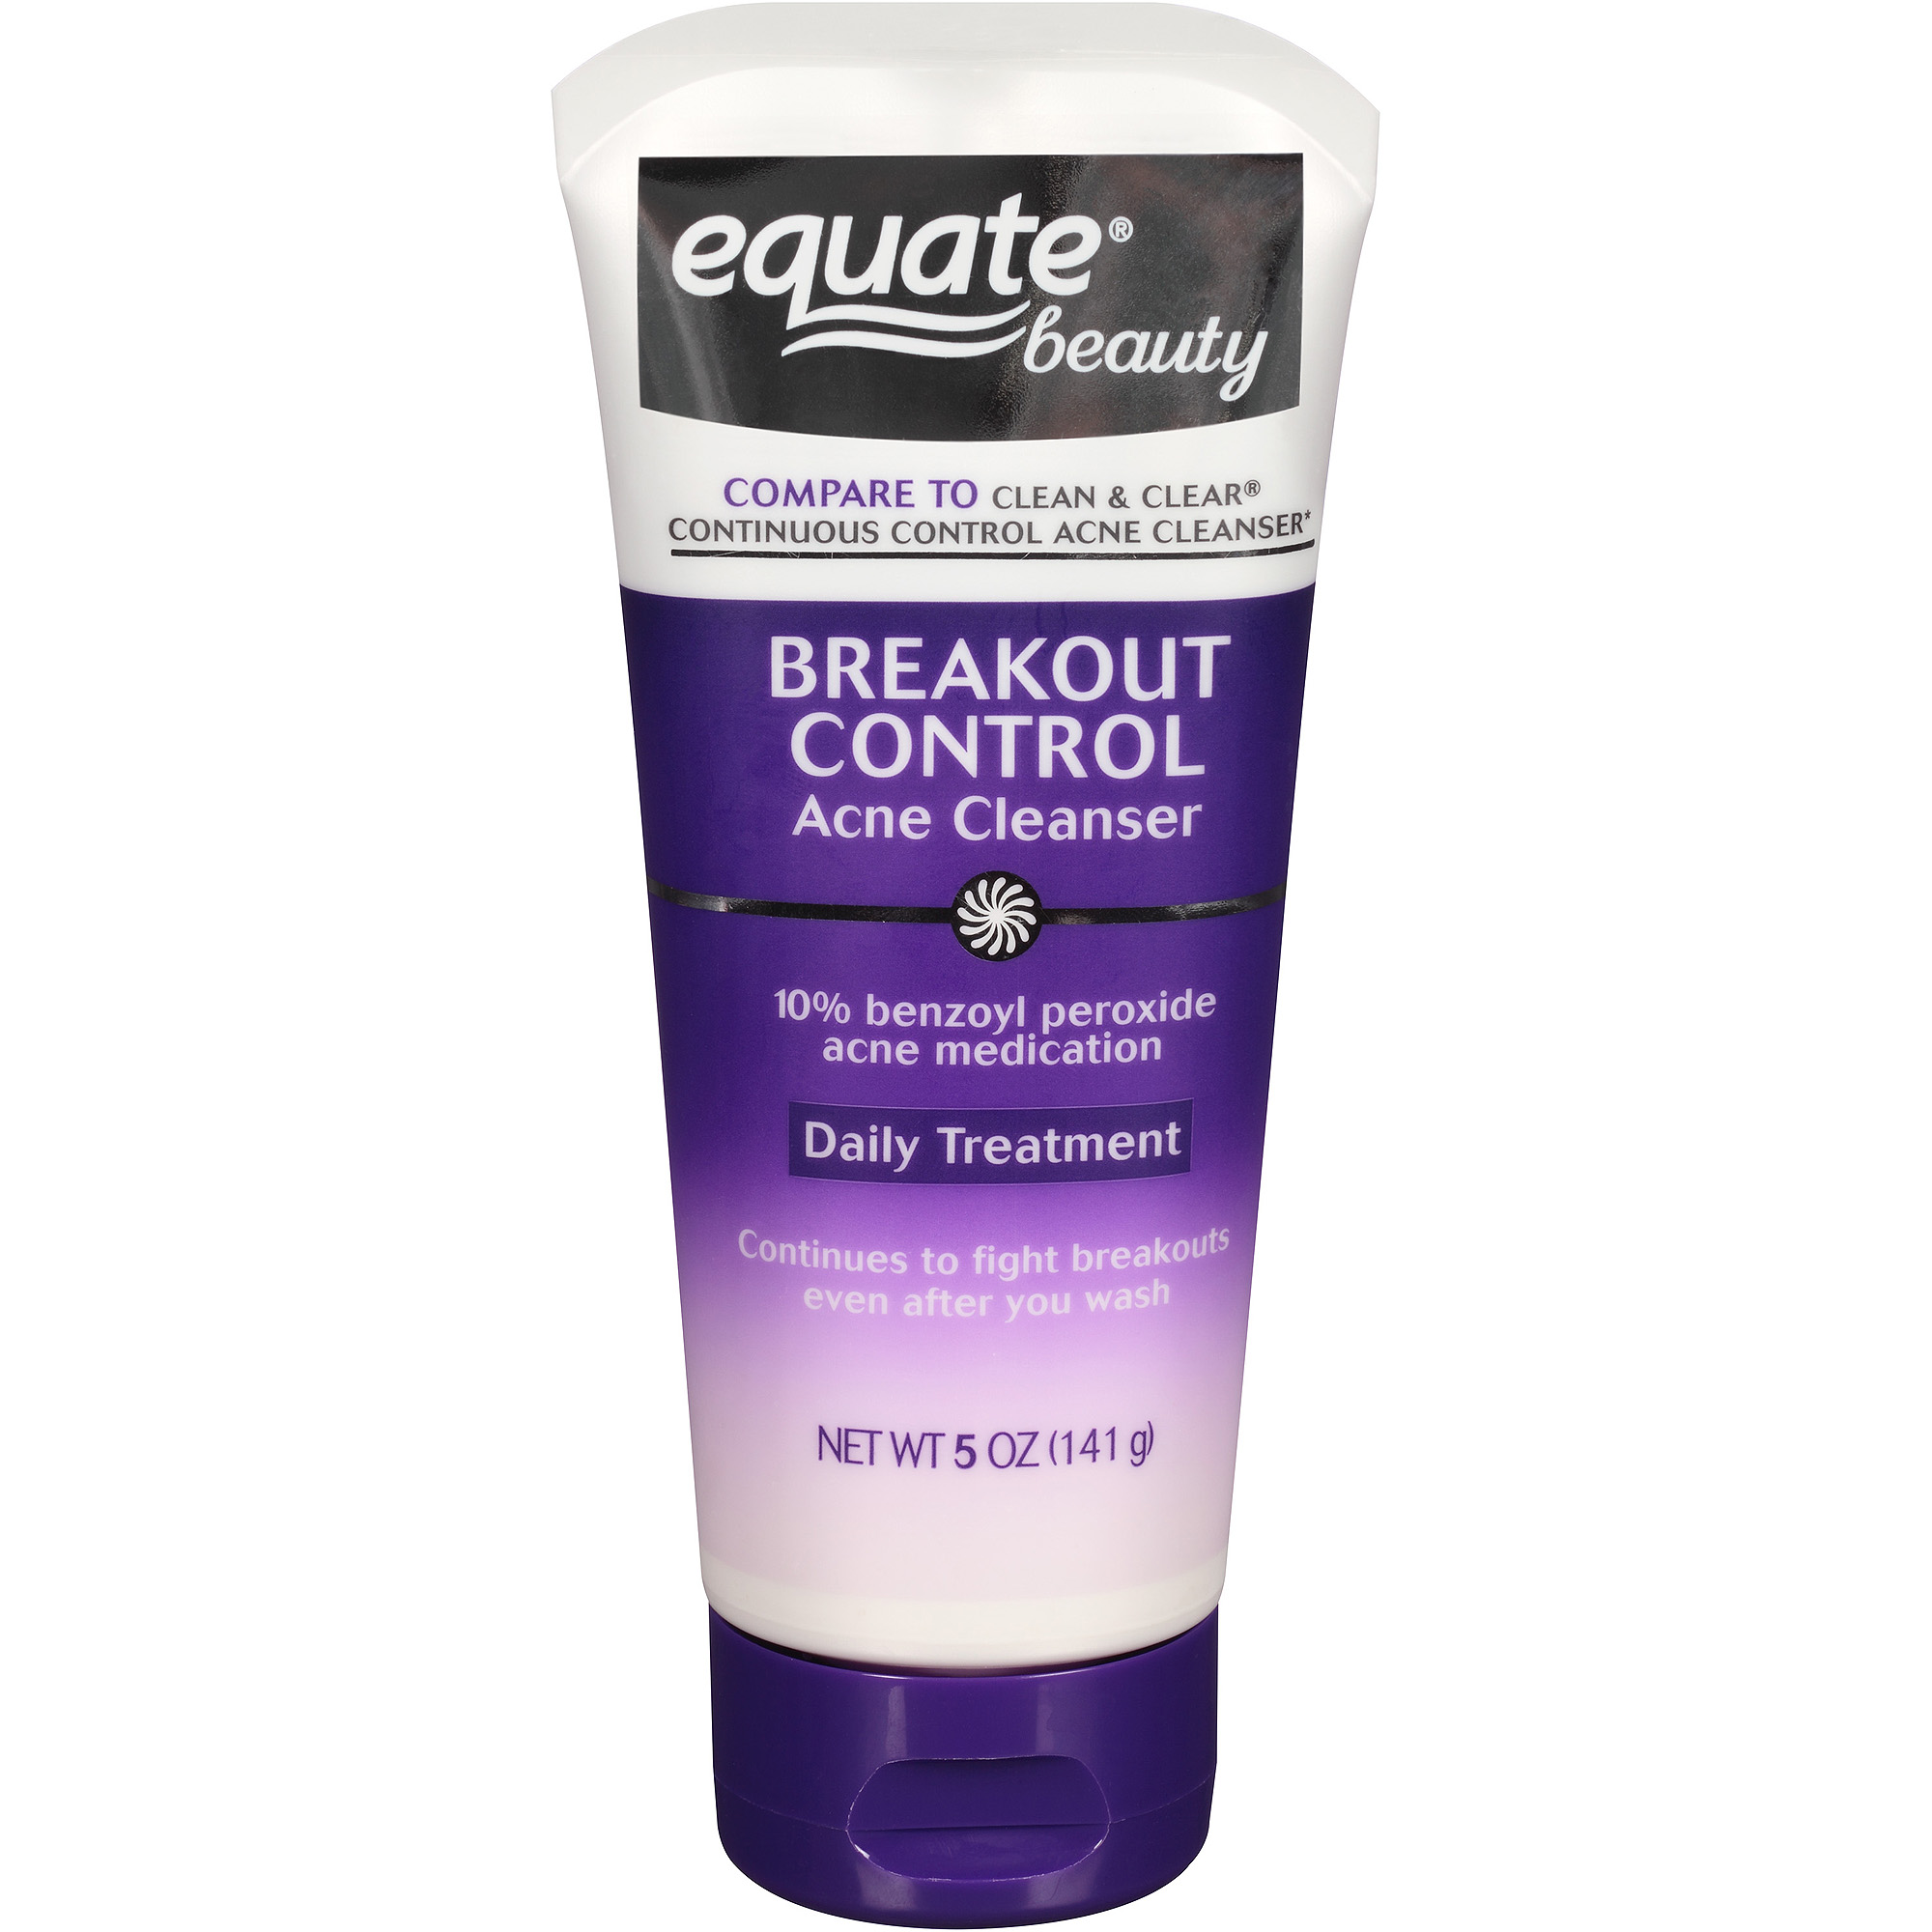 Equate Beauty Breakout Control Acne Cleanser, 5 oz